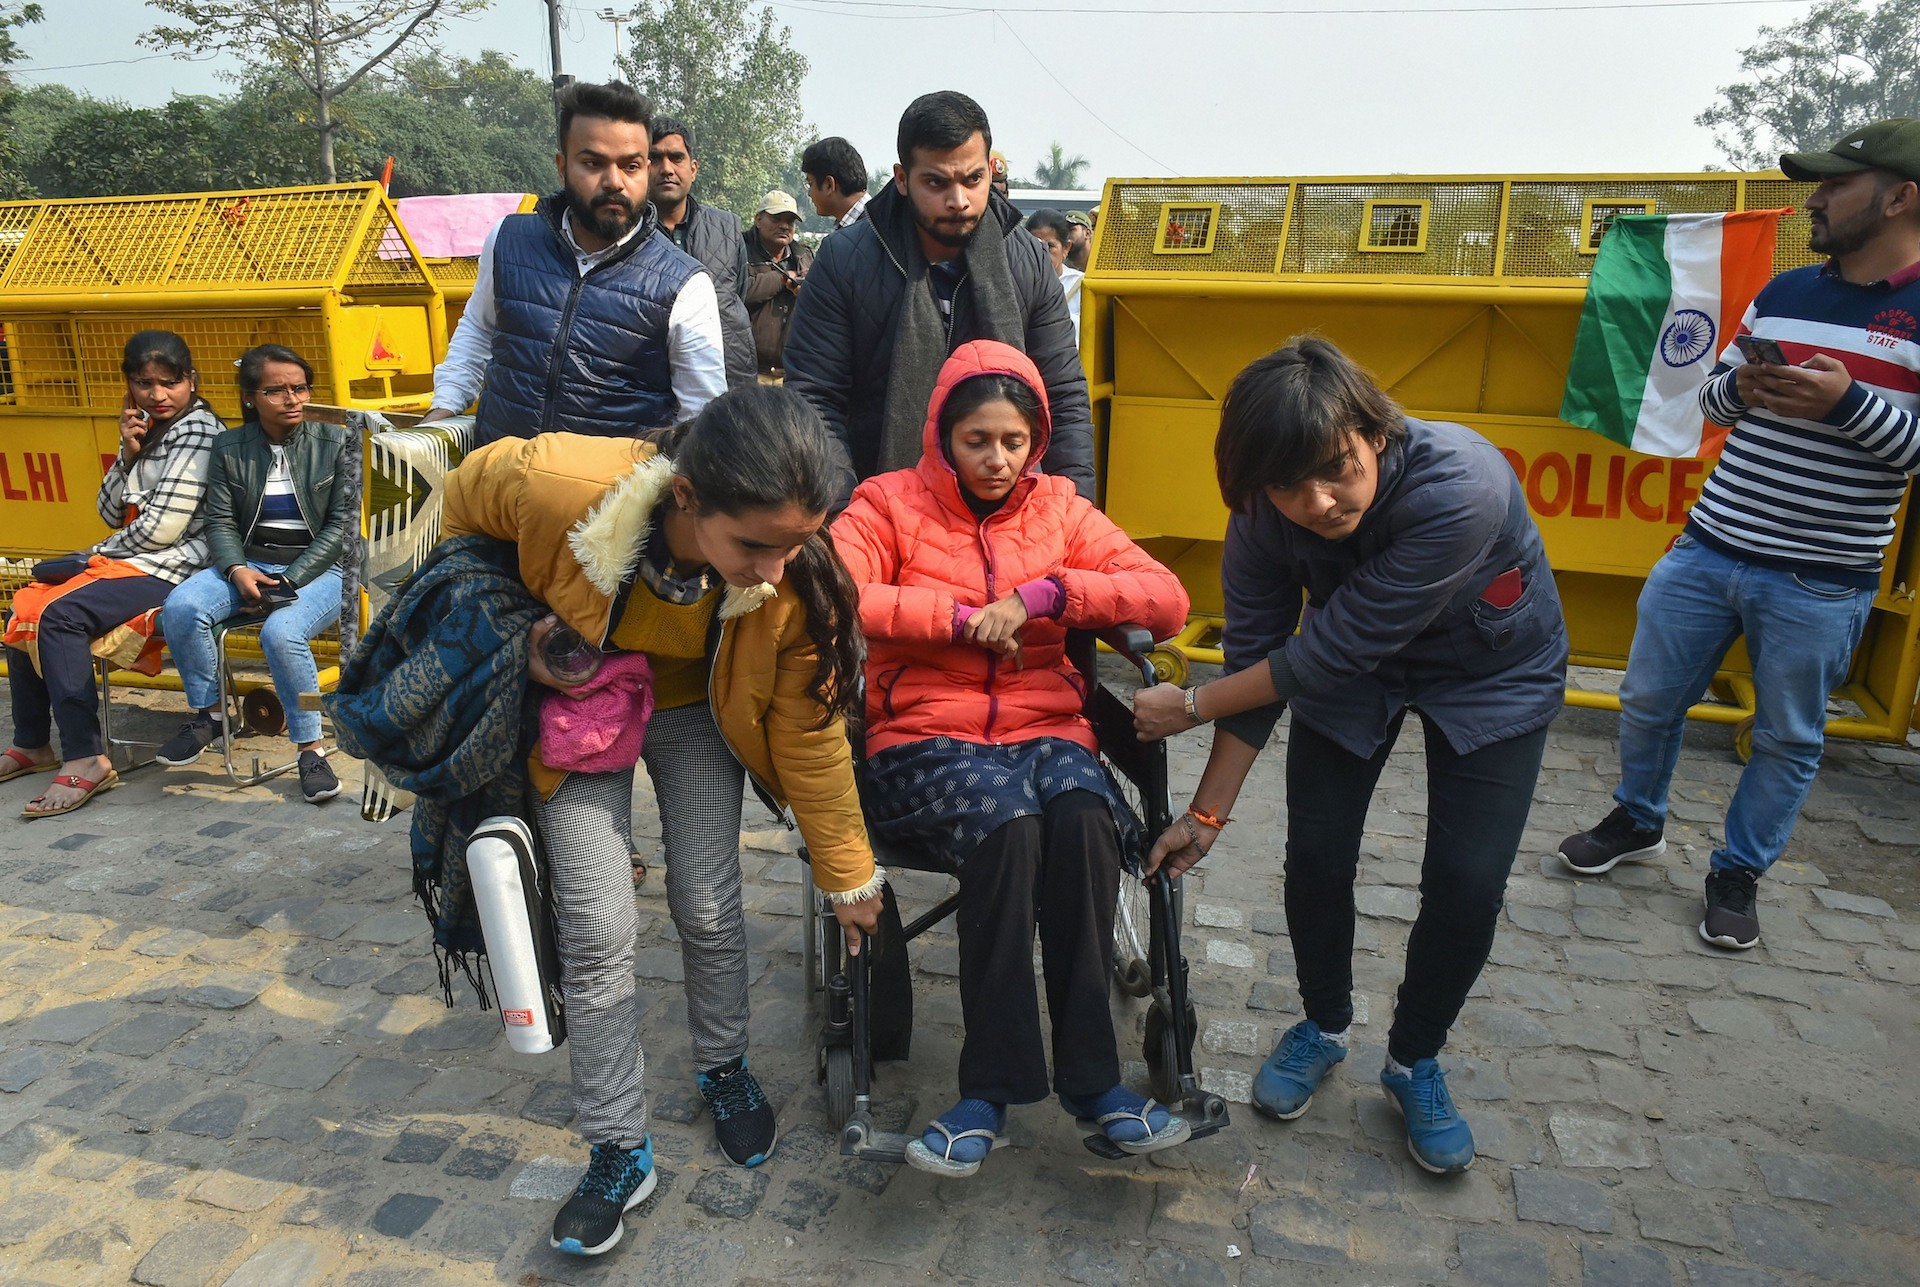 Delhi Commission for Women chairperson Swati Maliwal during her hunger strike at Samta Sthal, in New Delhi on Tuesday, December 10, 2019.